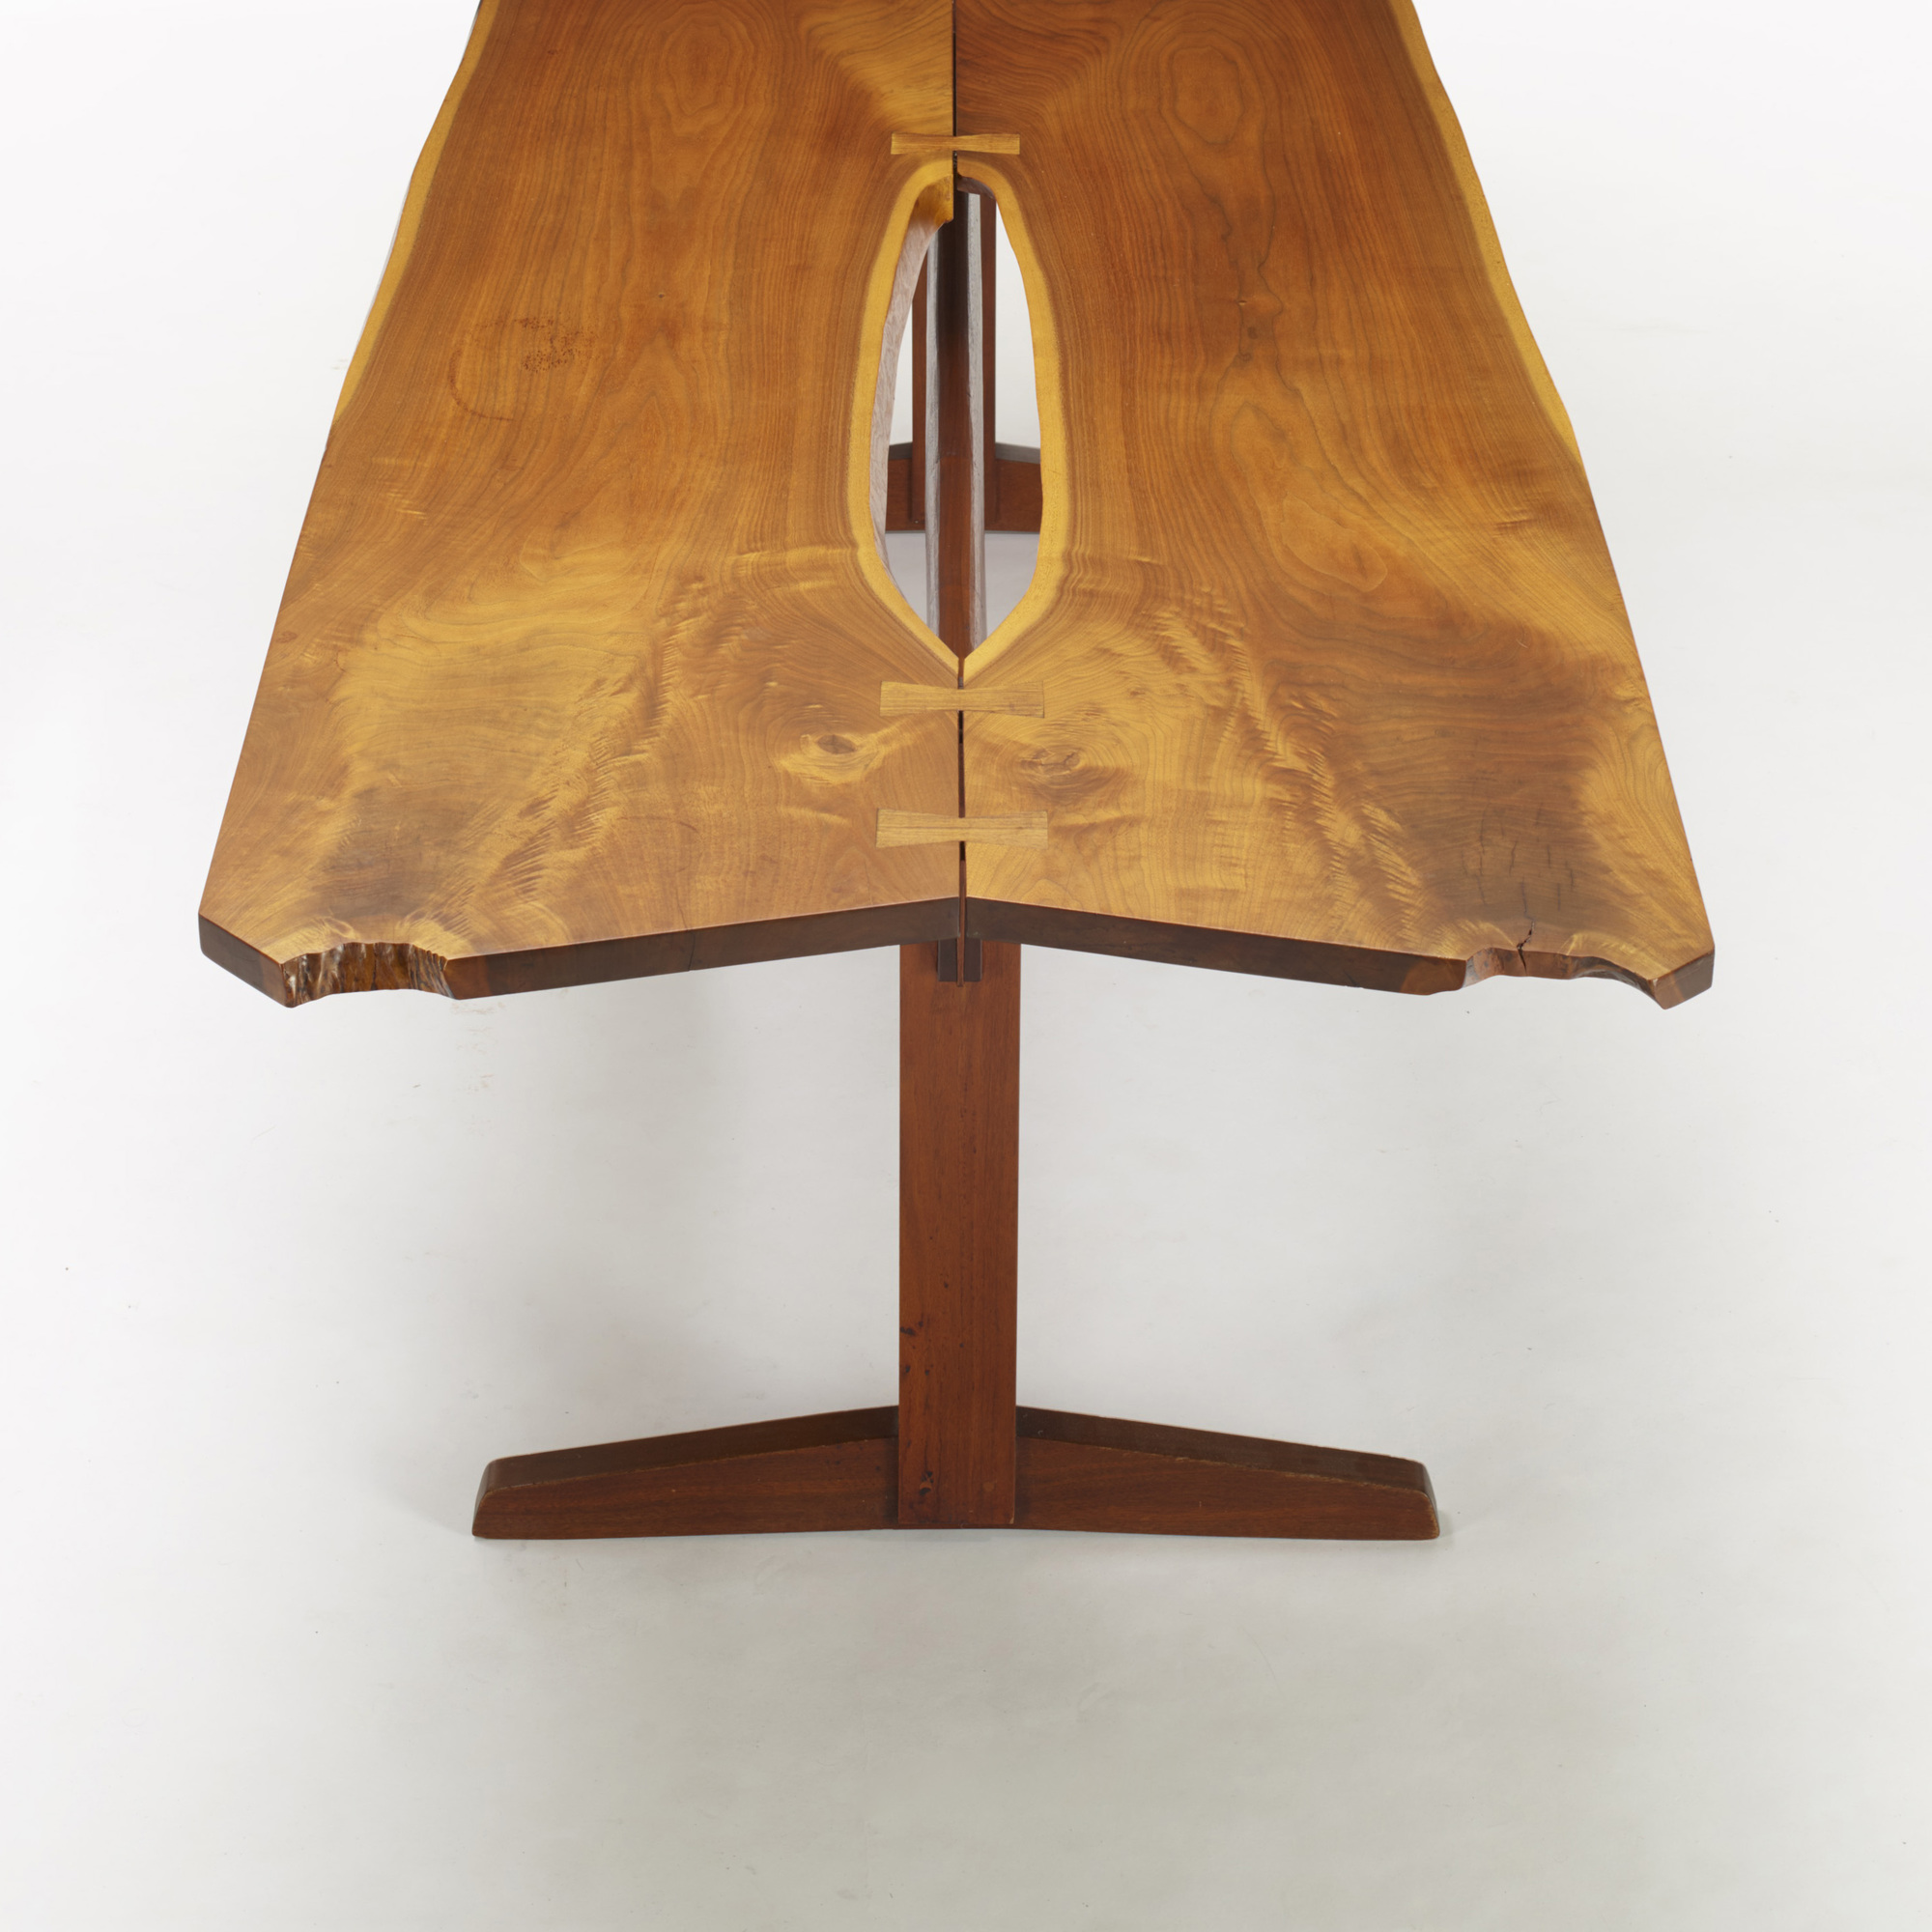 102: George Nakashima / early and important Trestle dining table (3 of 4)